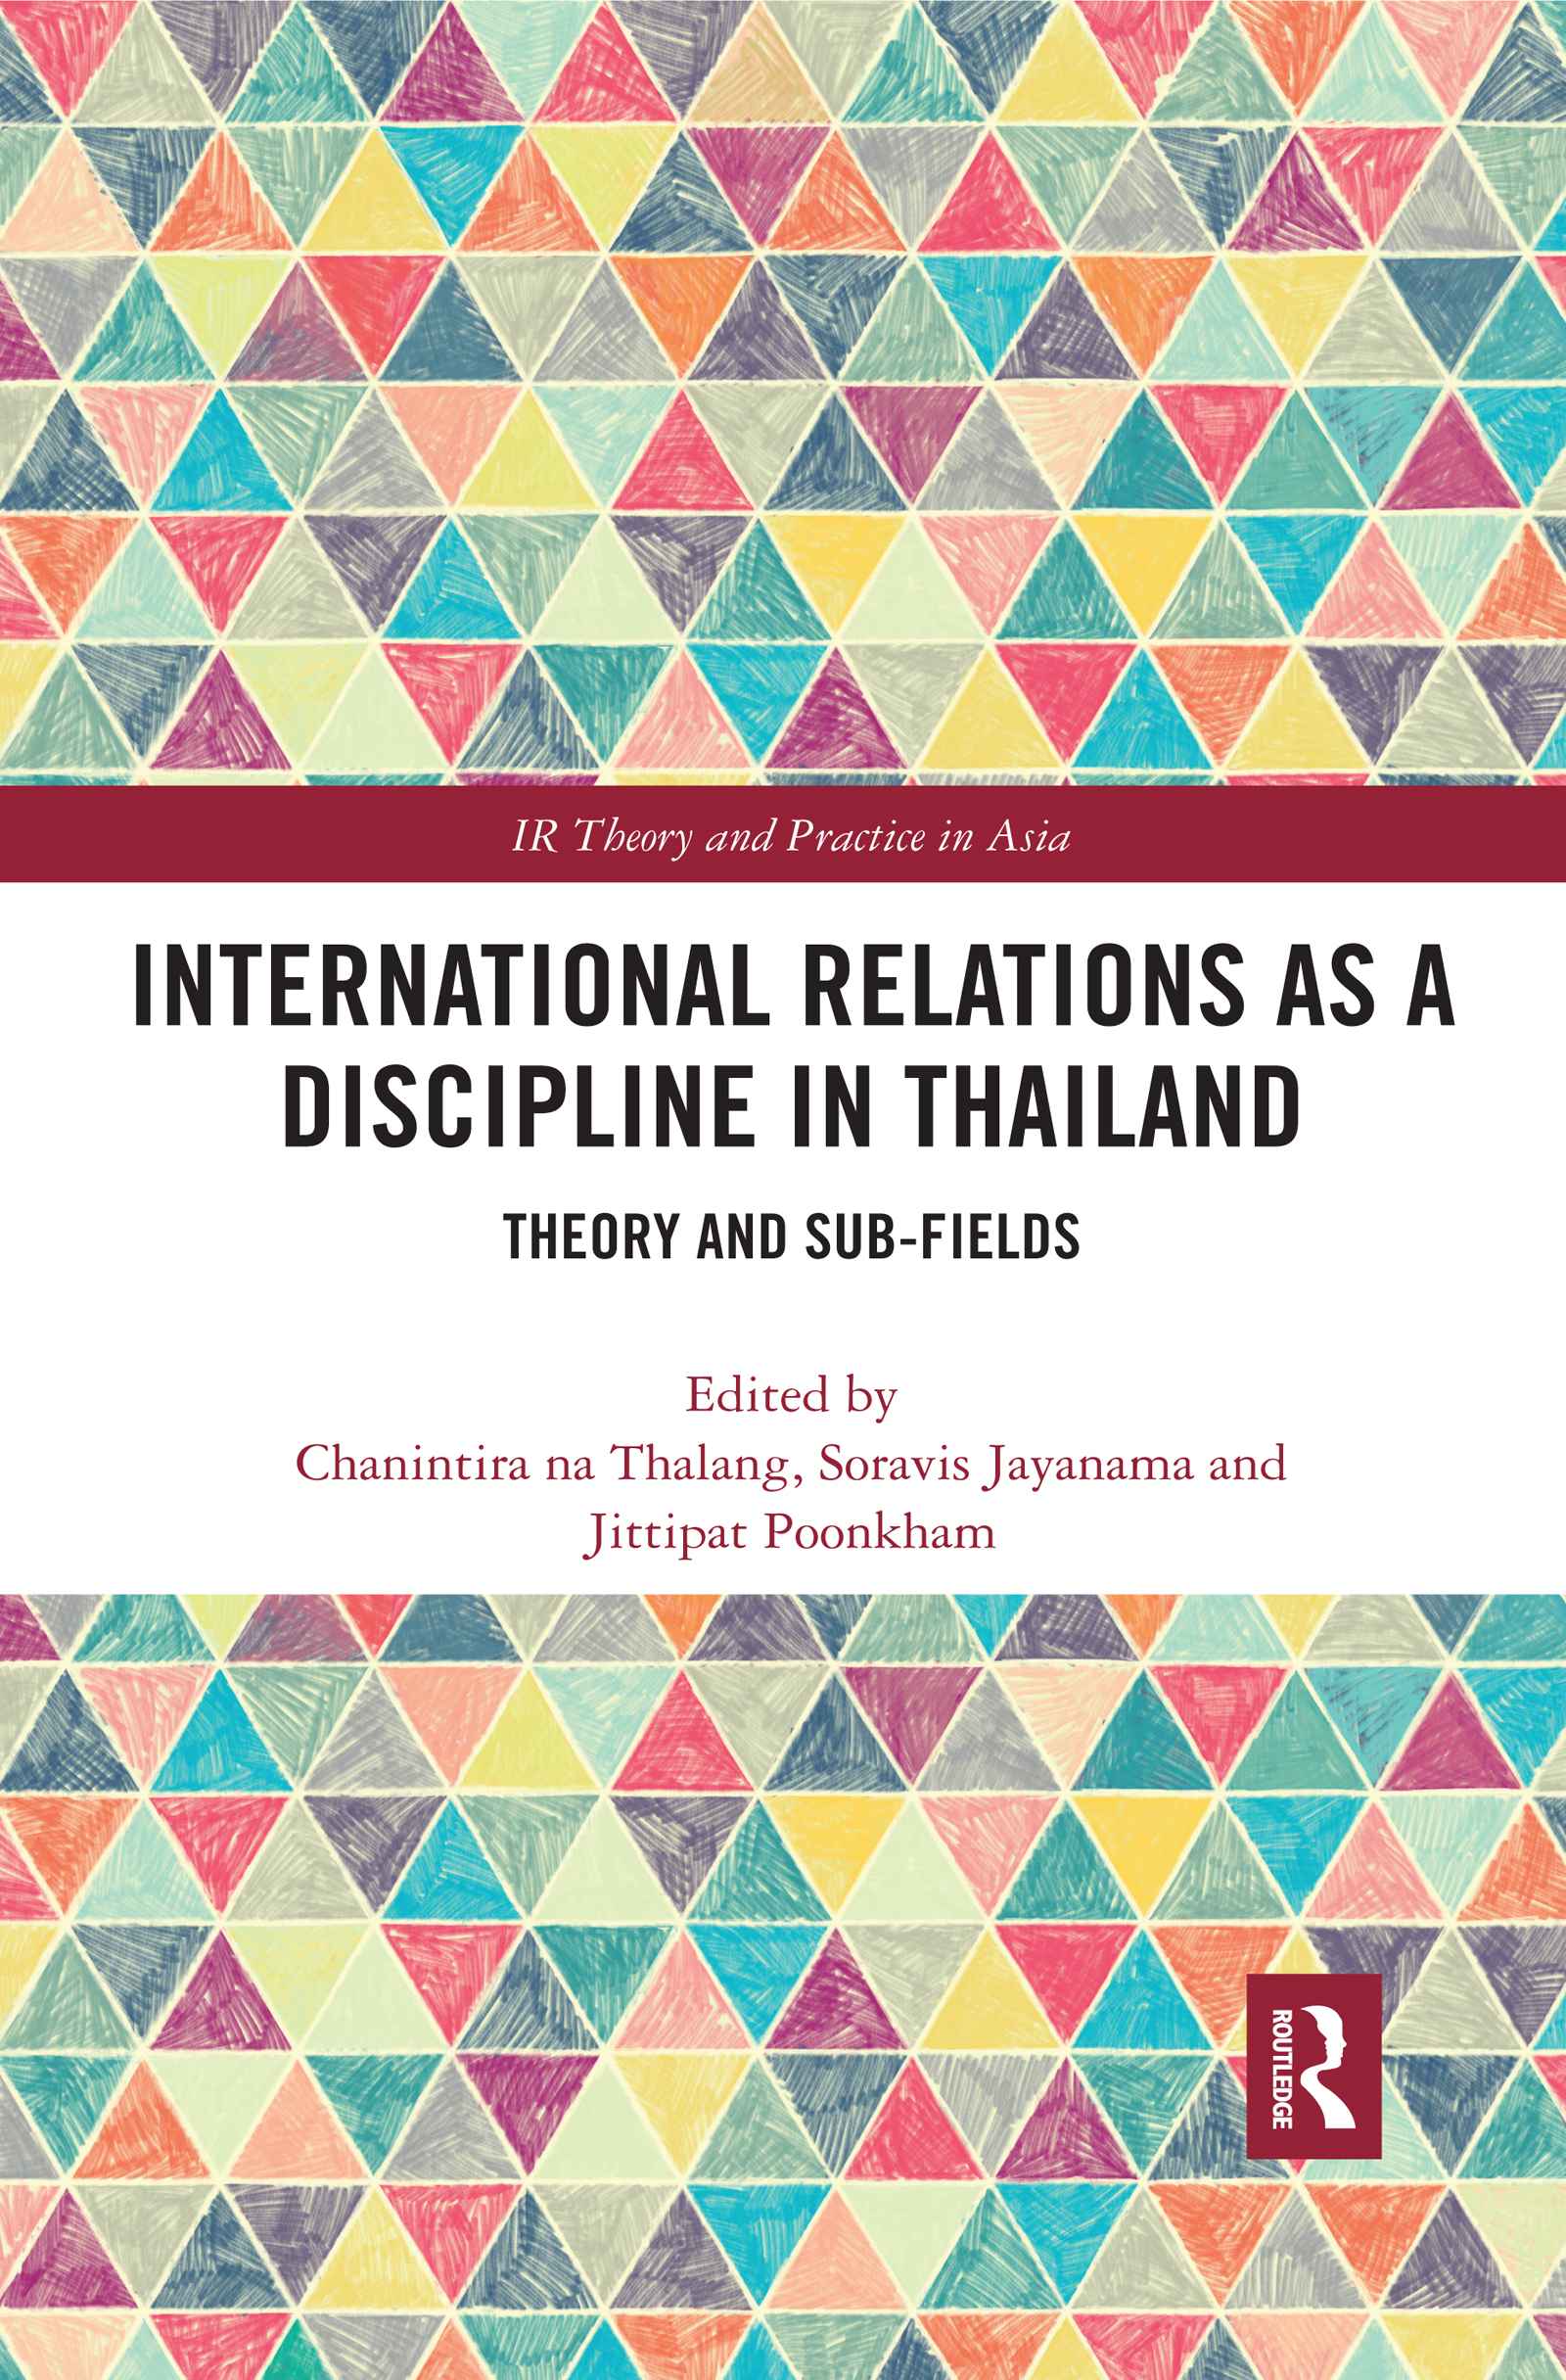 International Relations as a Discipline in Thailand